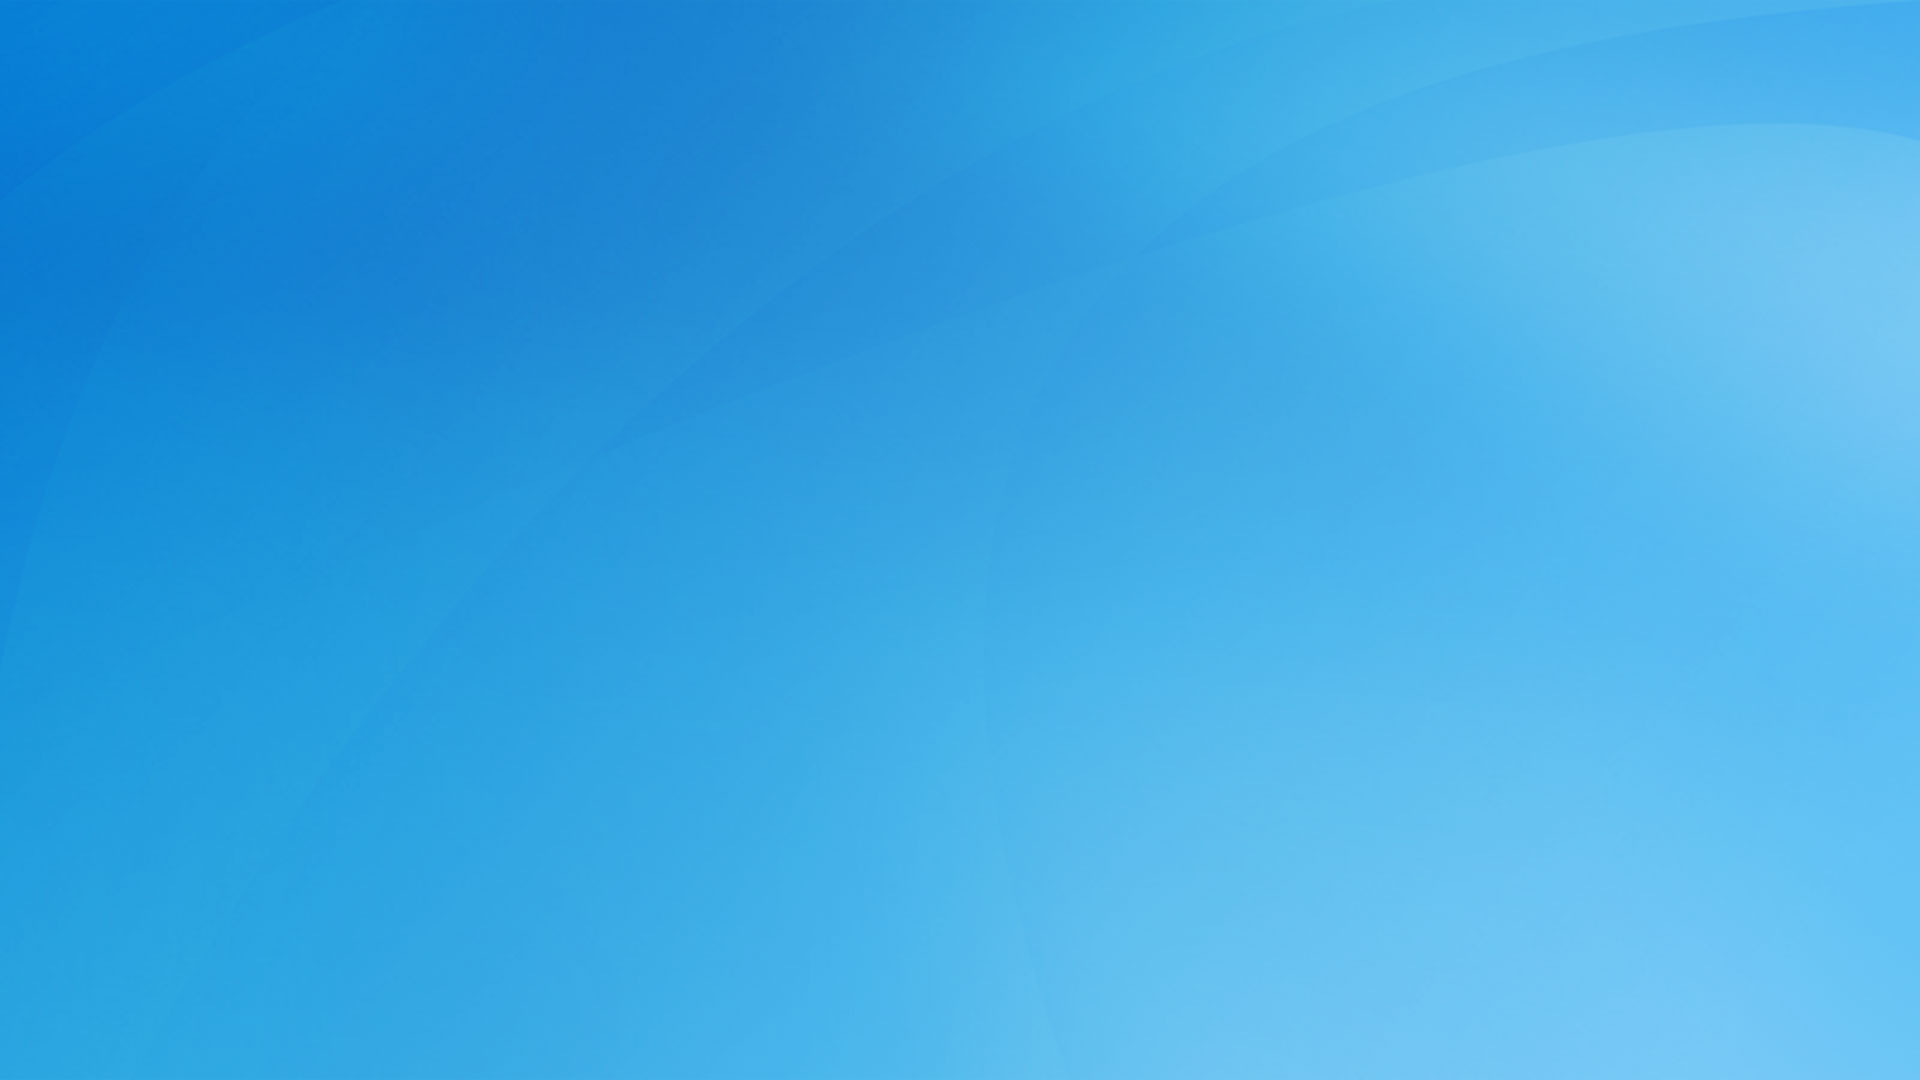 Plain Blue Background